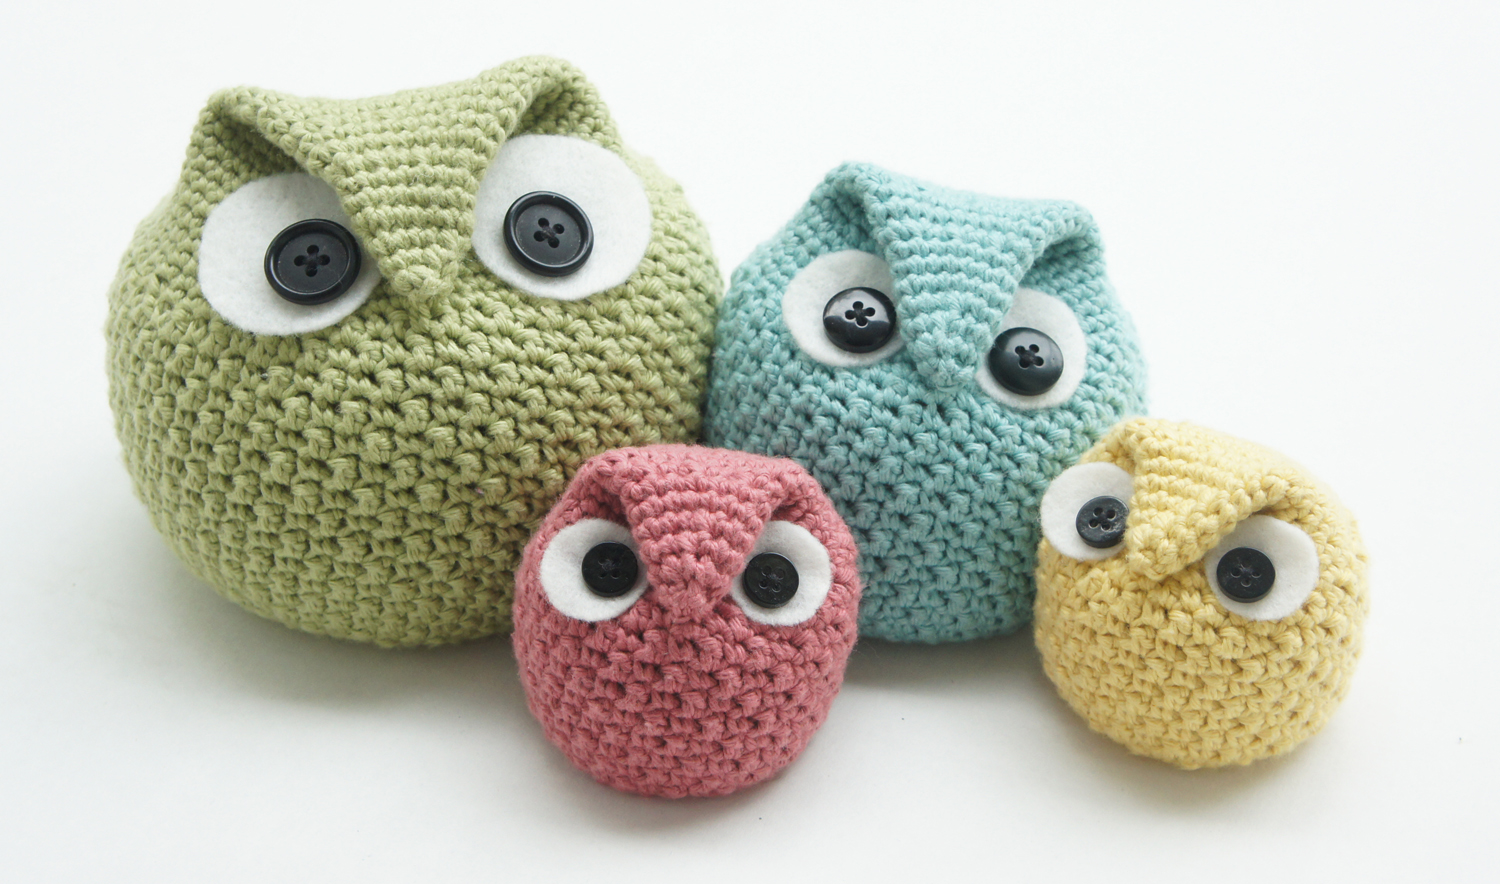 Crochet Owl : ... design shop: new crochet pattern - chubby owl family by tara schreyer